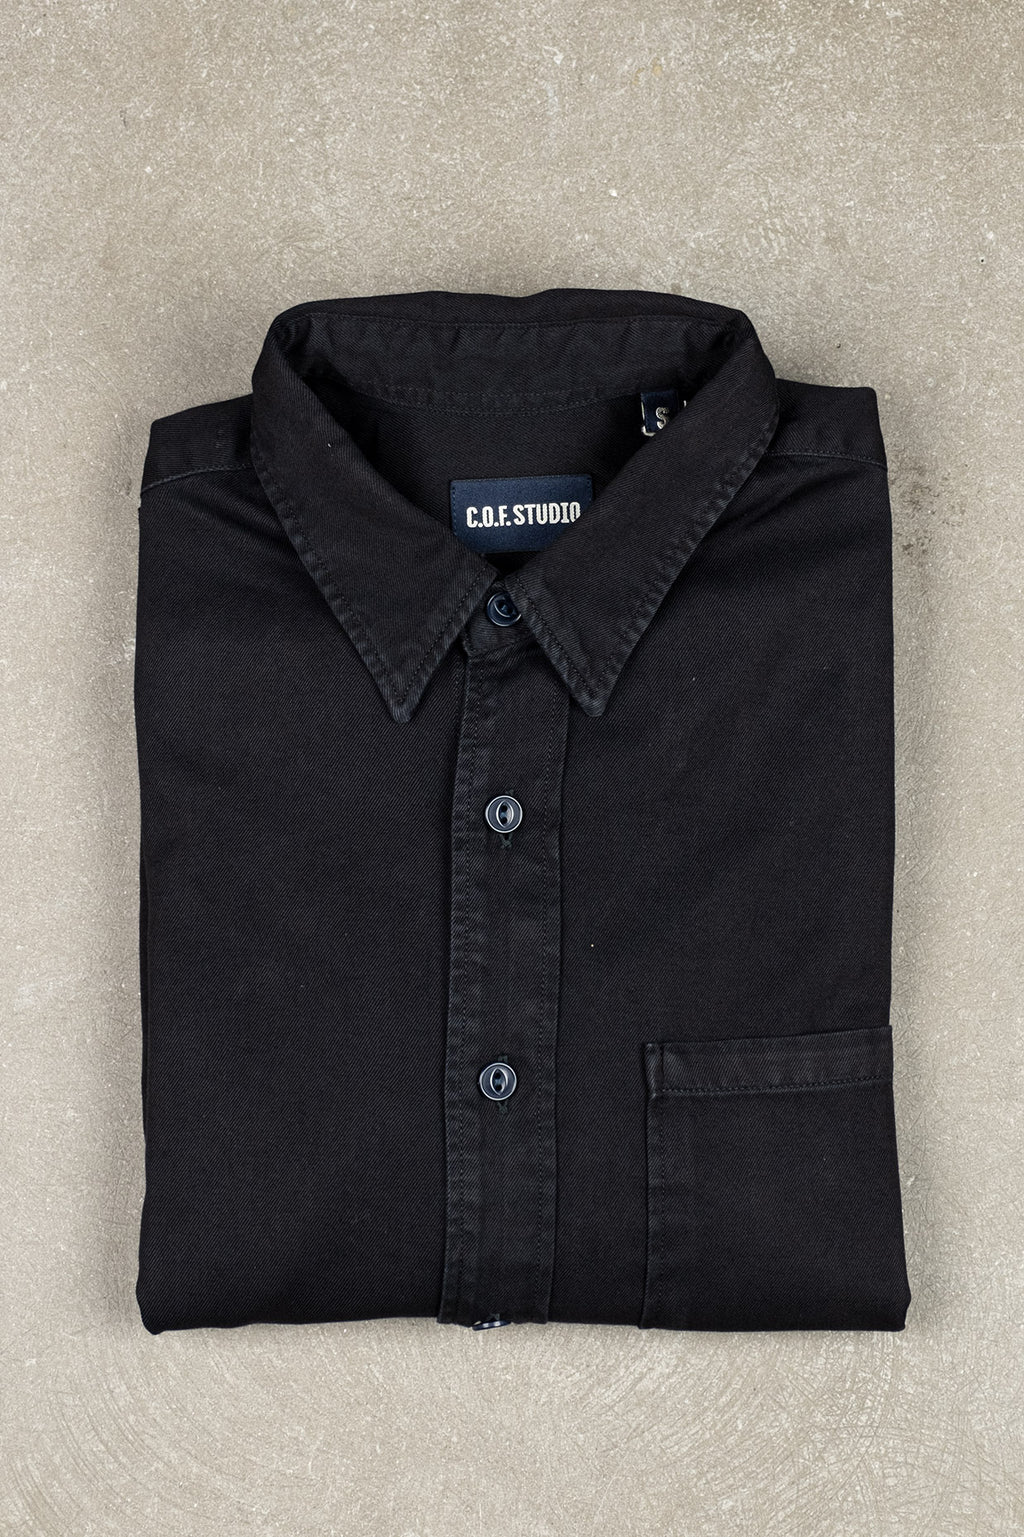 New Standard Shirt Black Twill - Rinsed